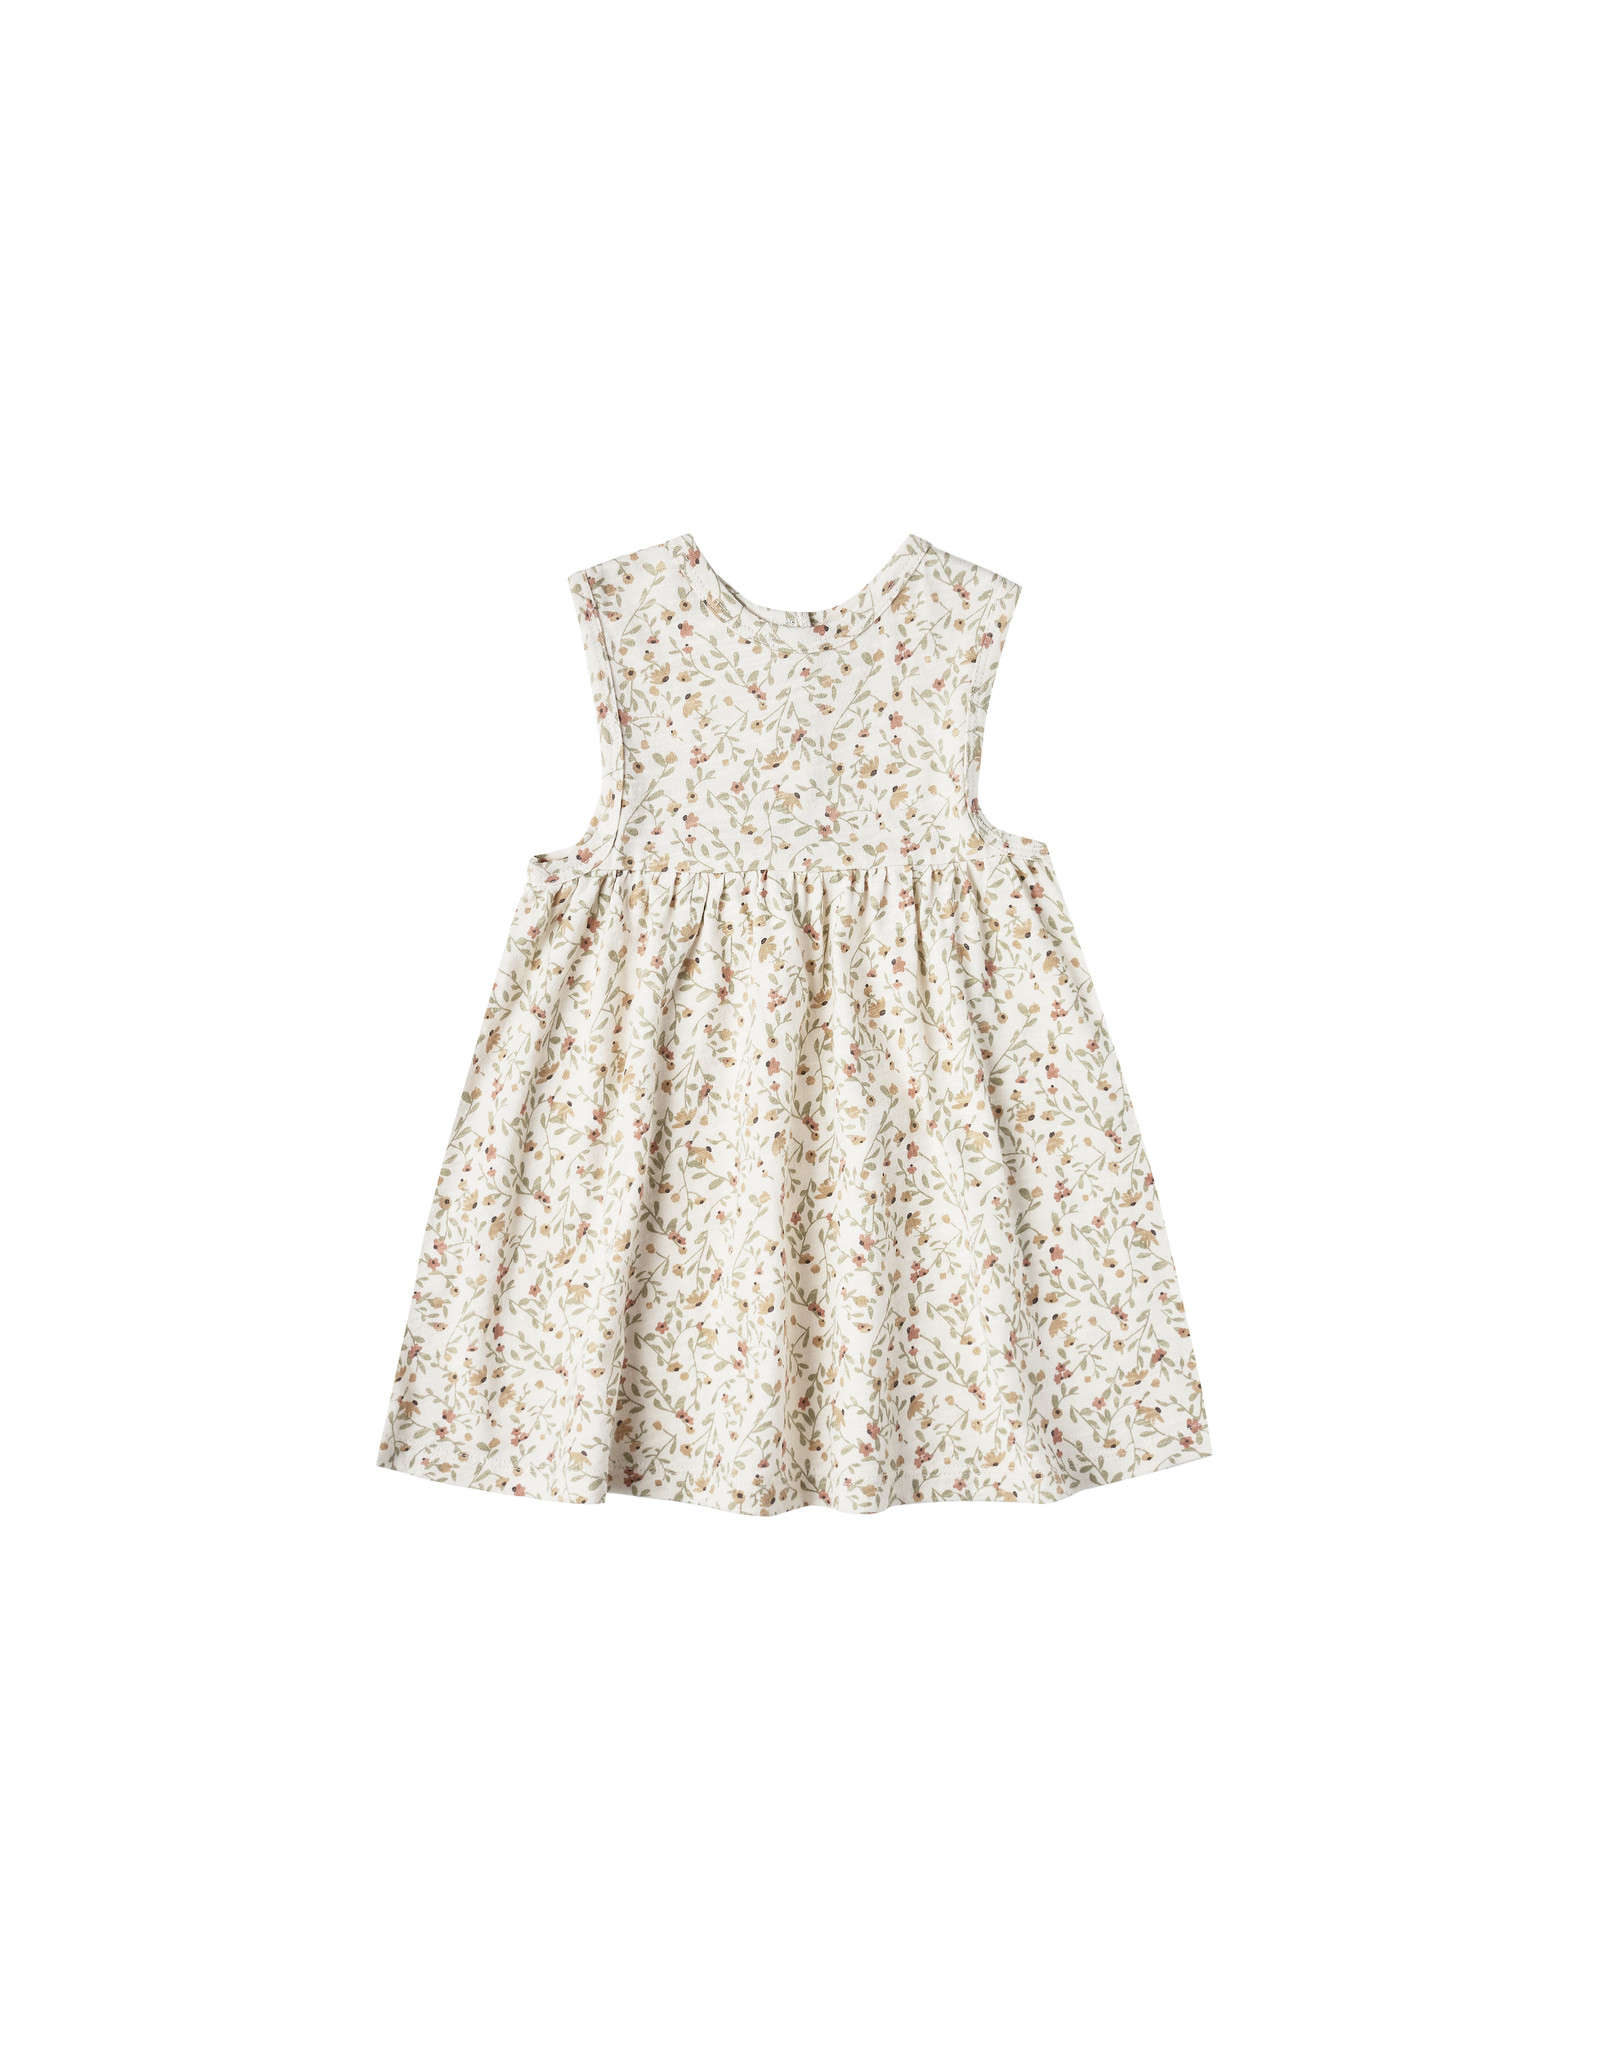 Rylee and Cru Spring Meadow Layla dress